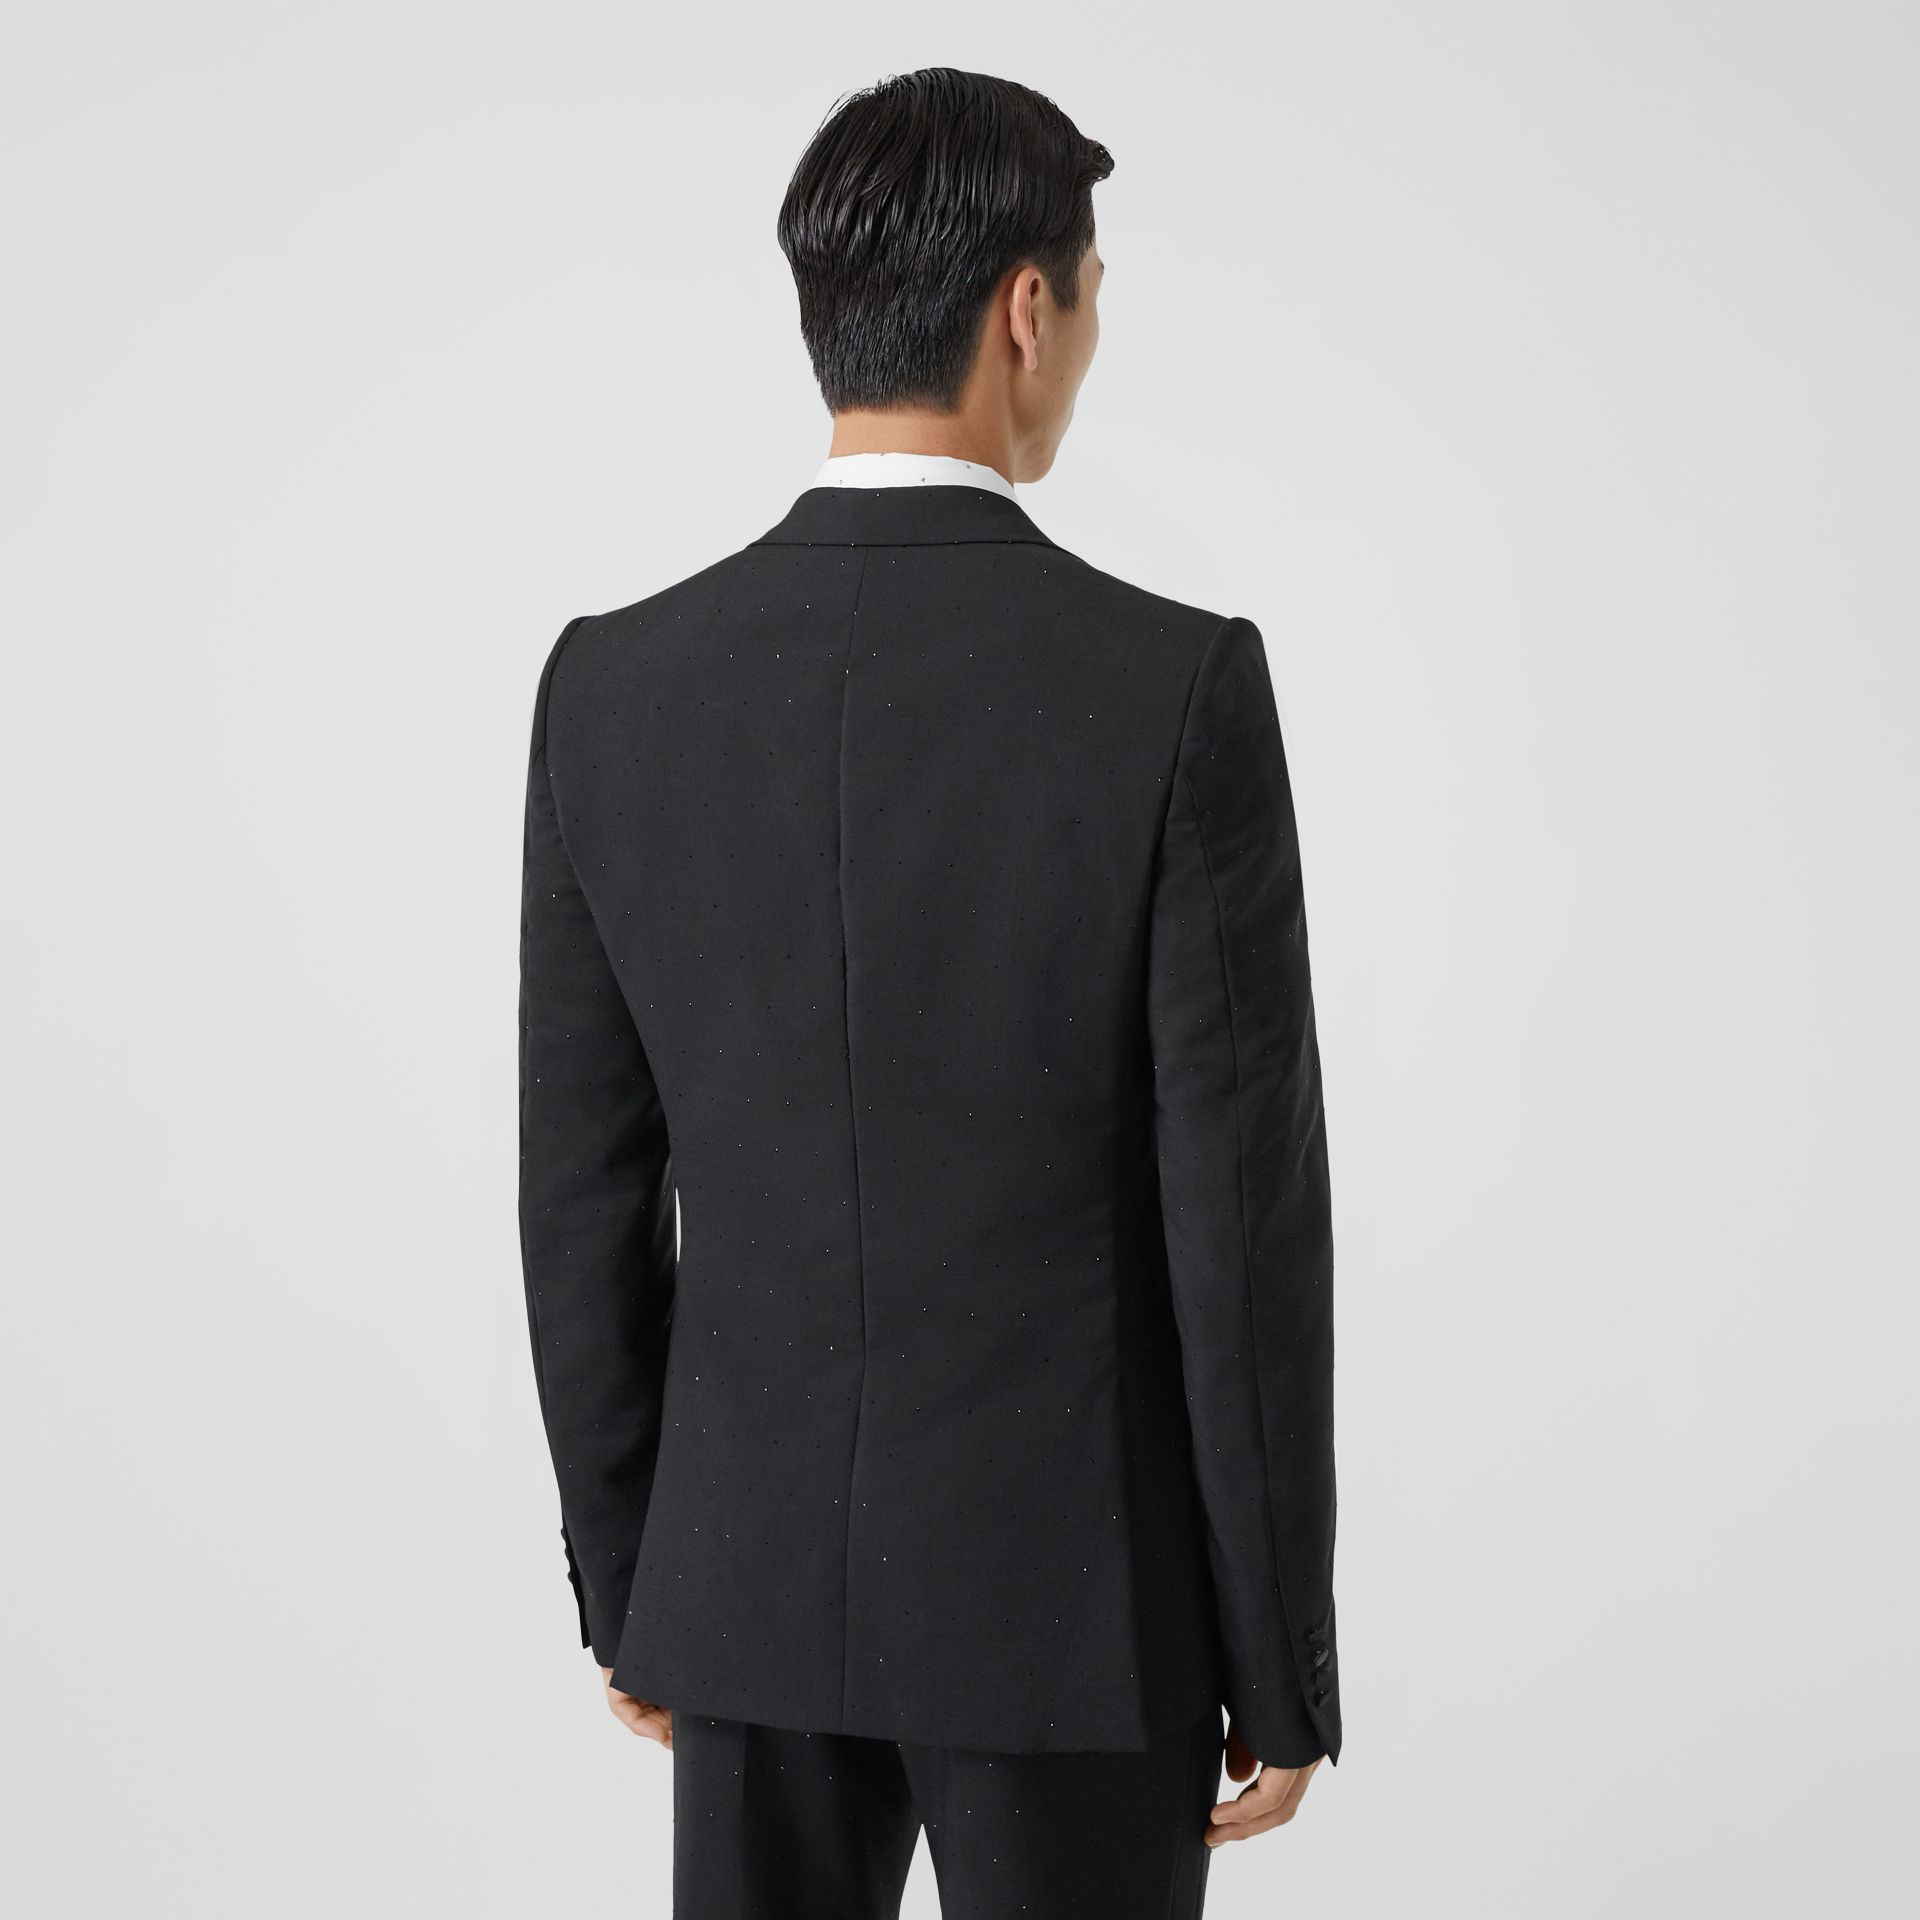 English Fit Embellished Wool Mohair Tailored Jacket in Black - Men | Burberry - gallery image 2